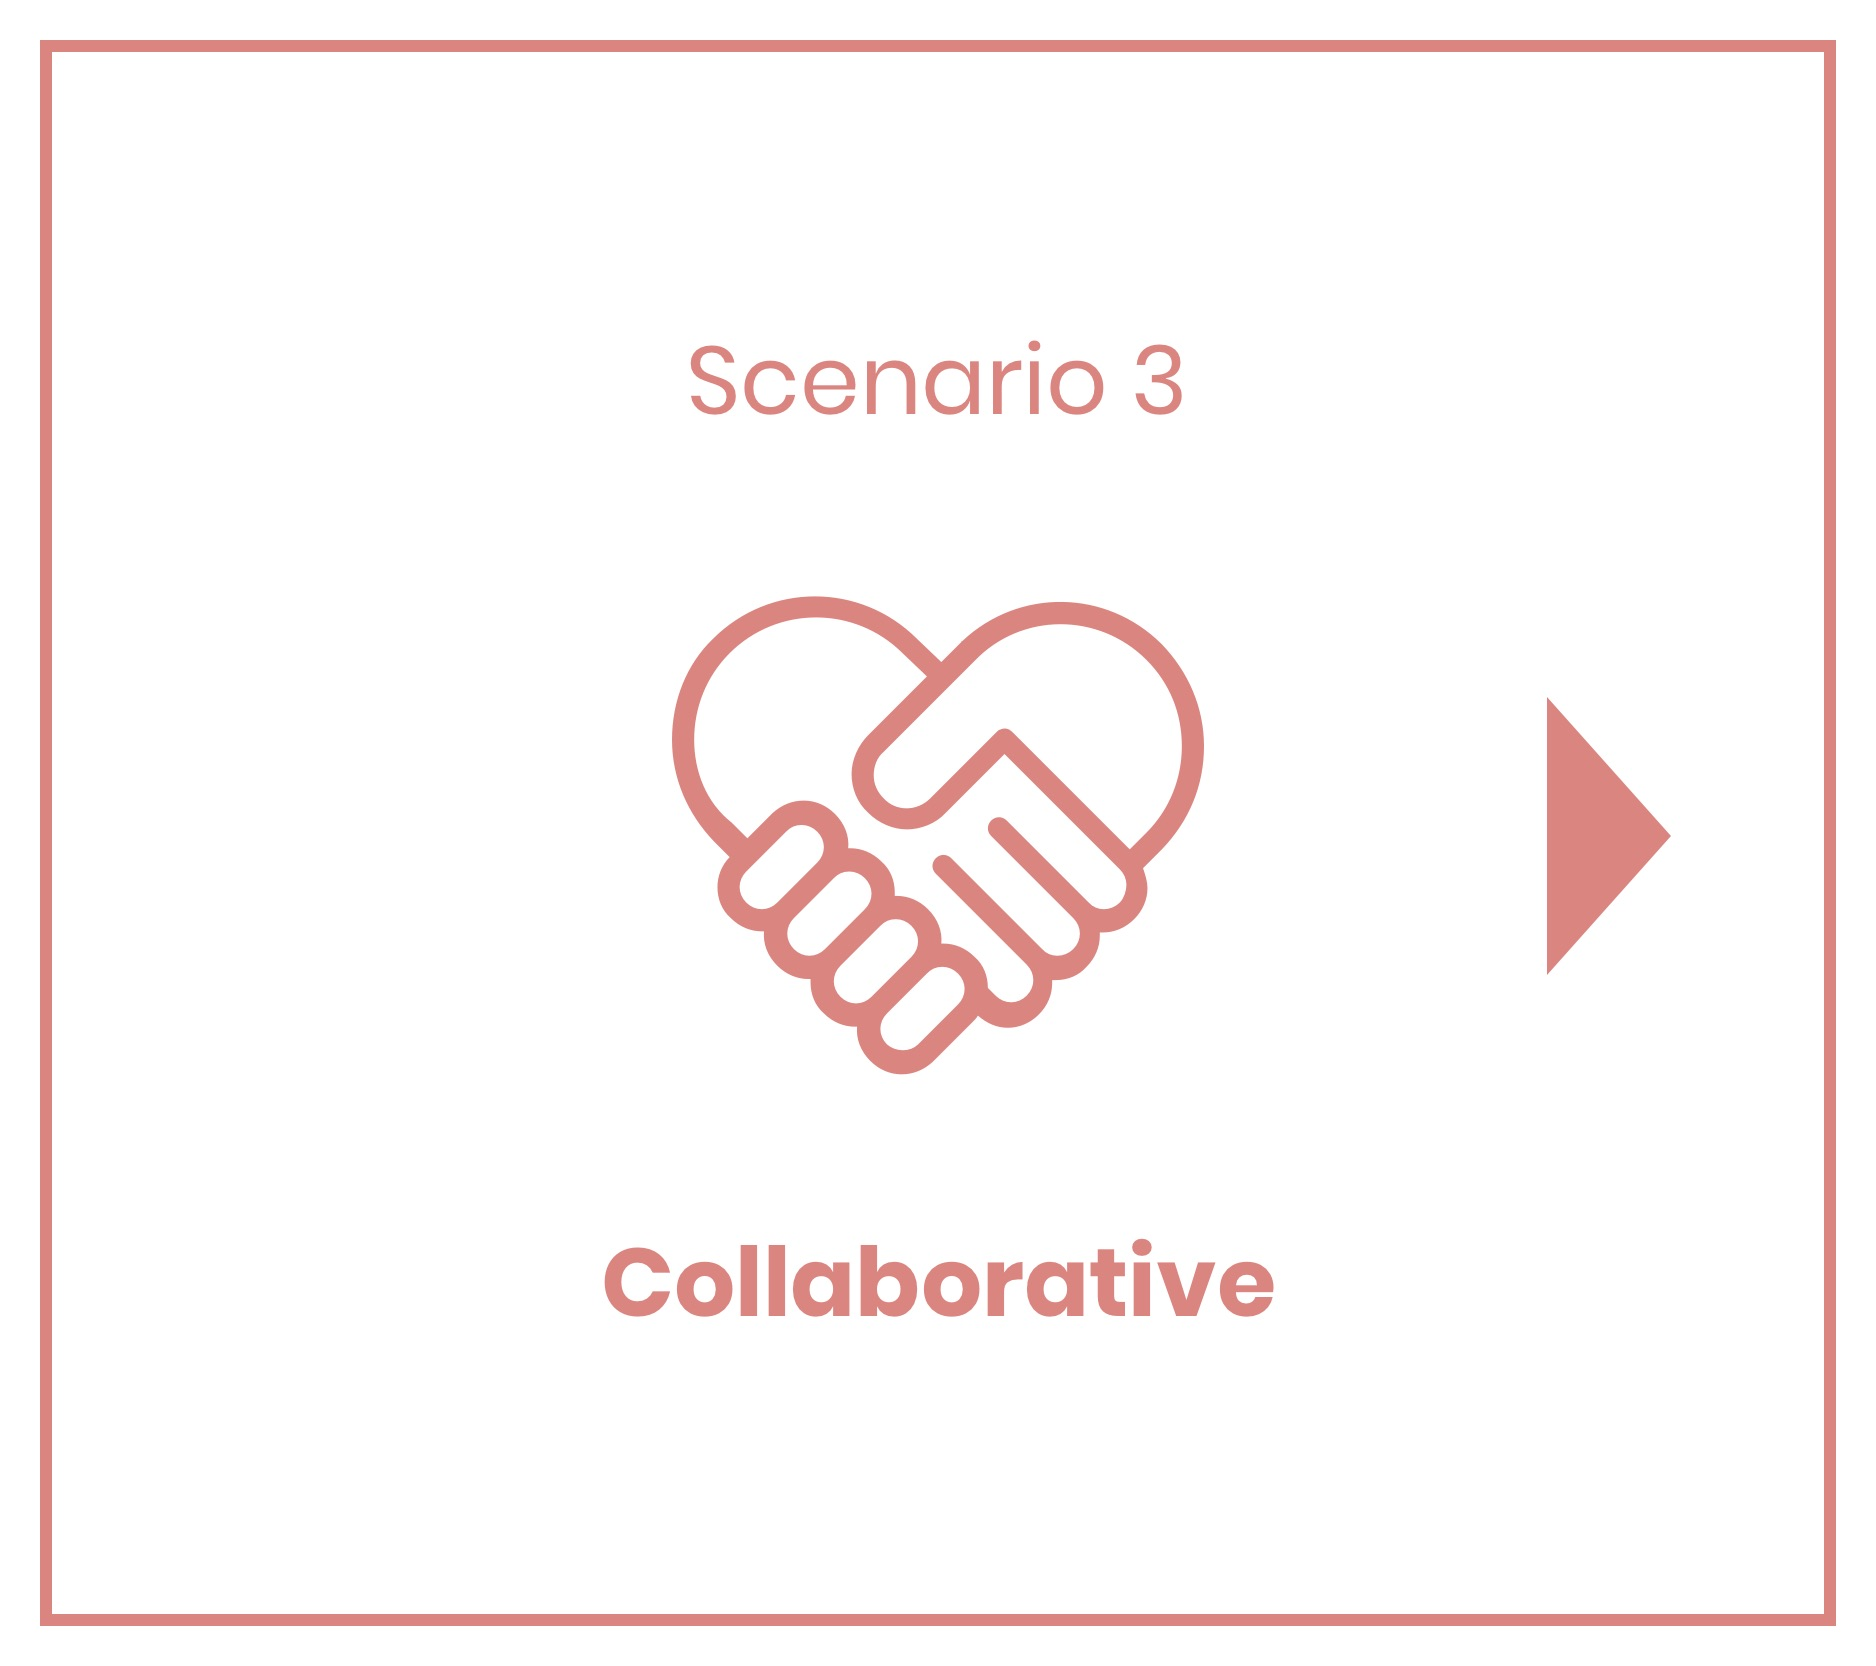 Scenario 3 is based on collaboration. Icon of two hands forming a heart represents collaboration.